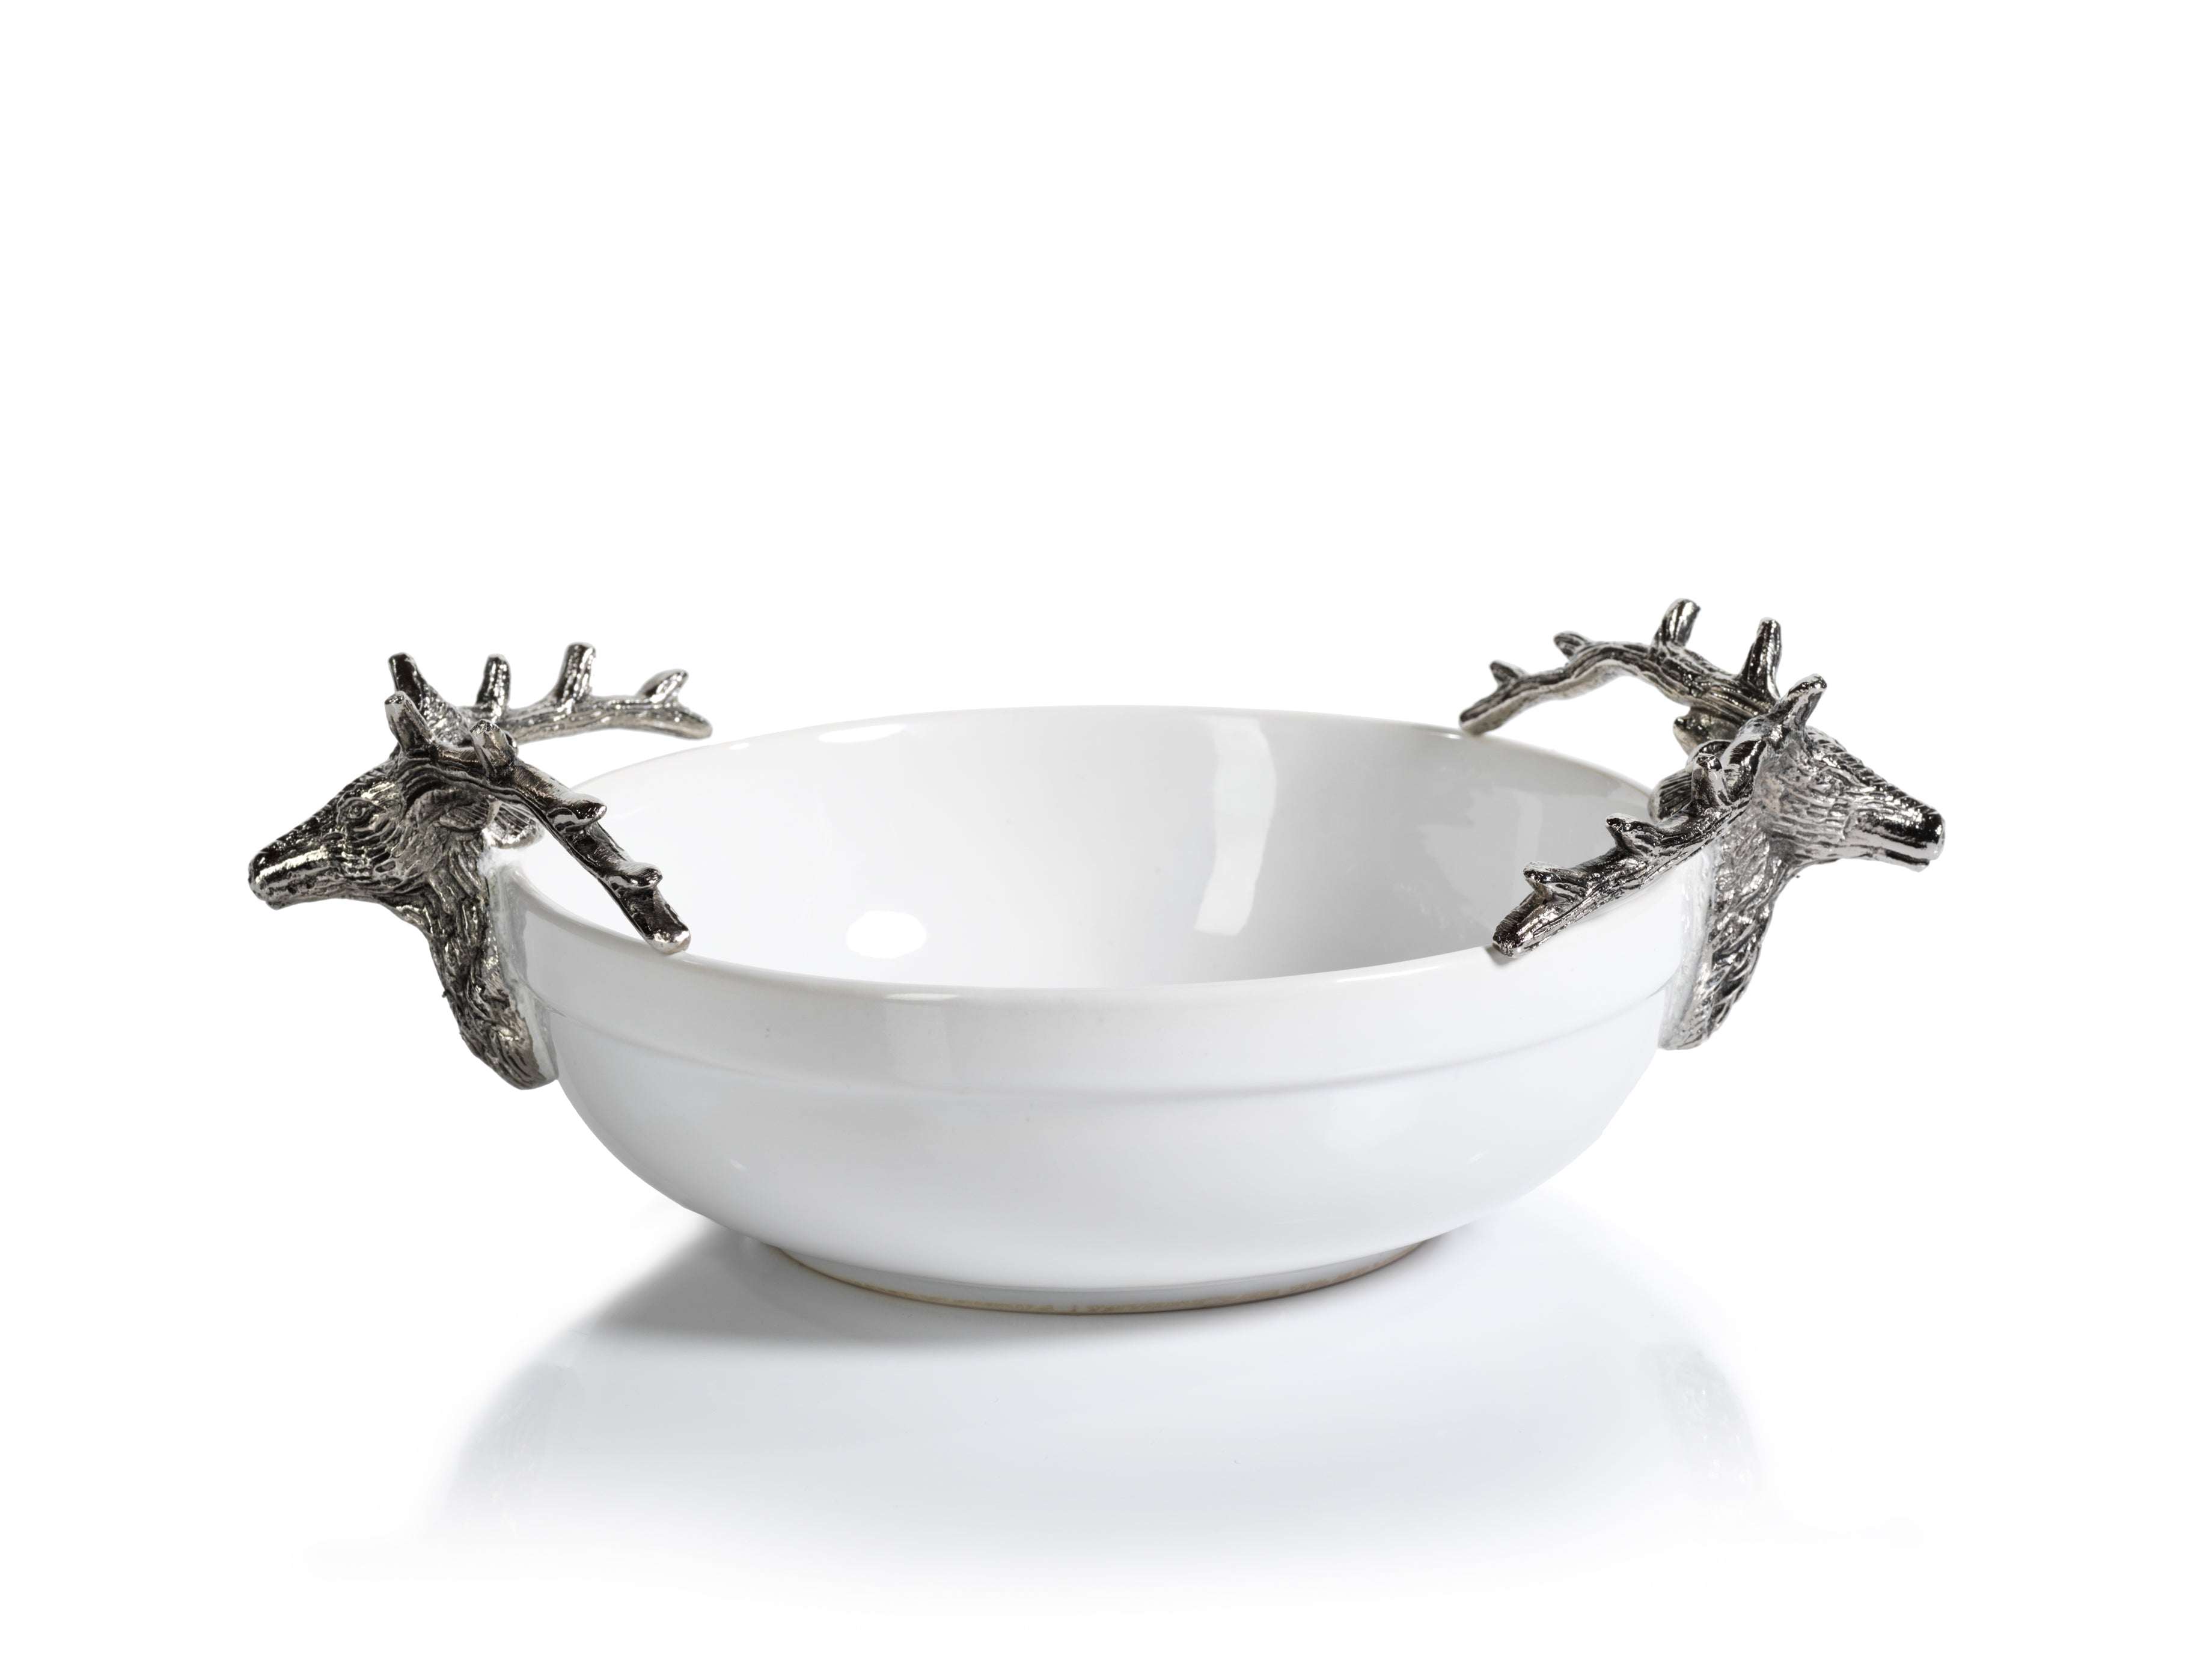 Ceramic and Metal Stag Head Bowl - CARLYLE AVENUE